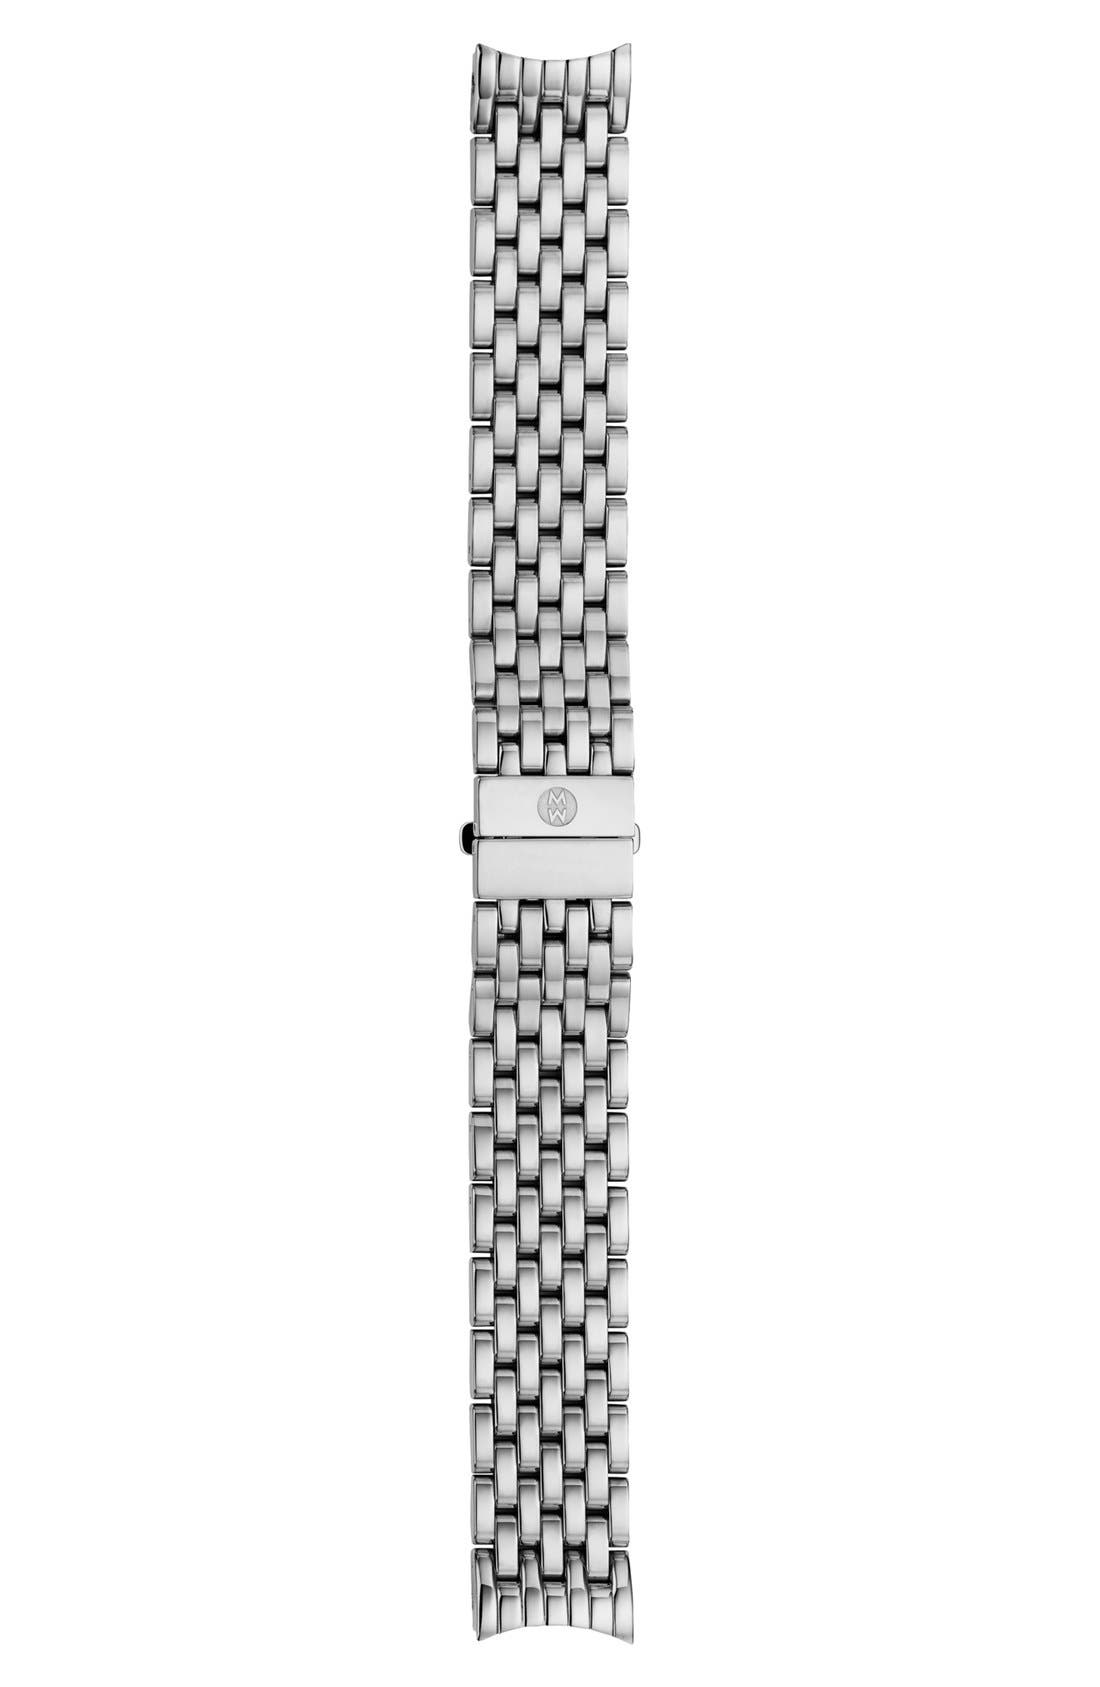 'Serein' 18mm Watch Bracelet Band,                             Alternate thumbnail 5, color,                             SILVER